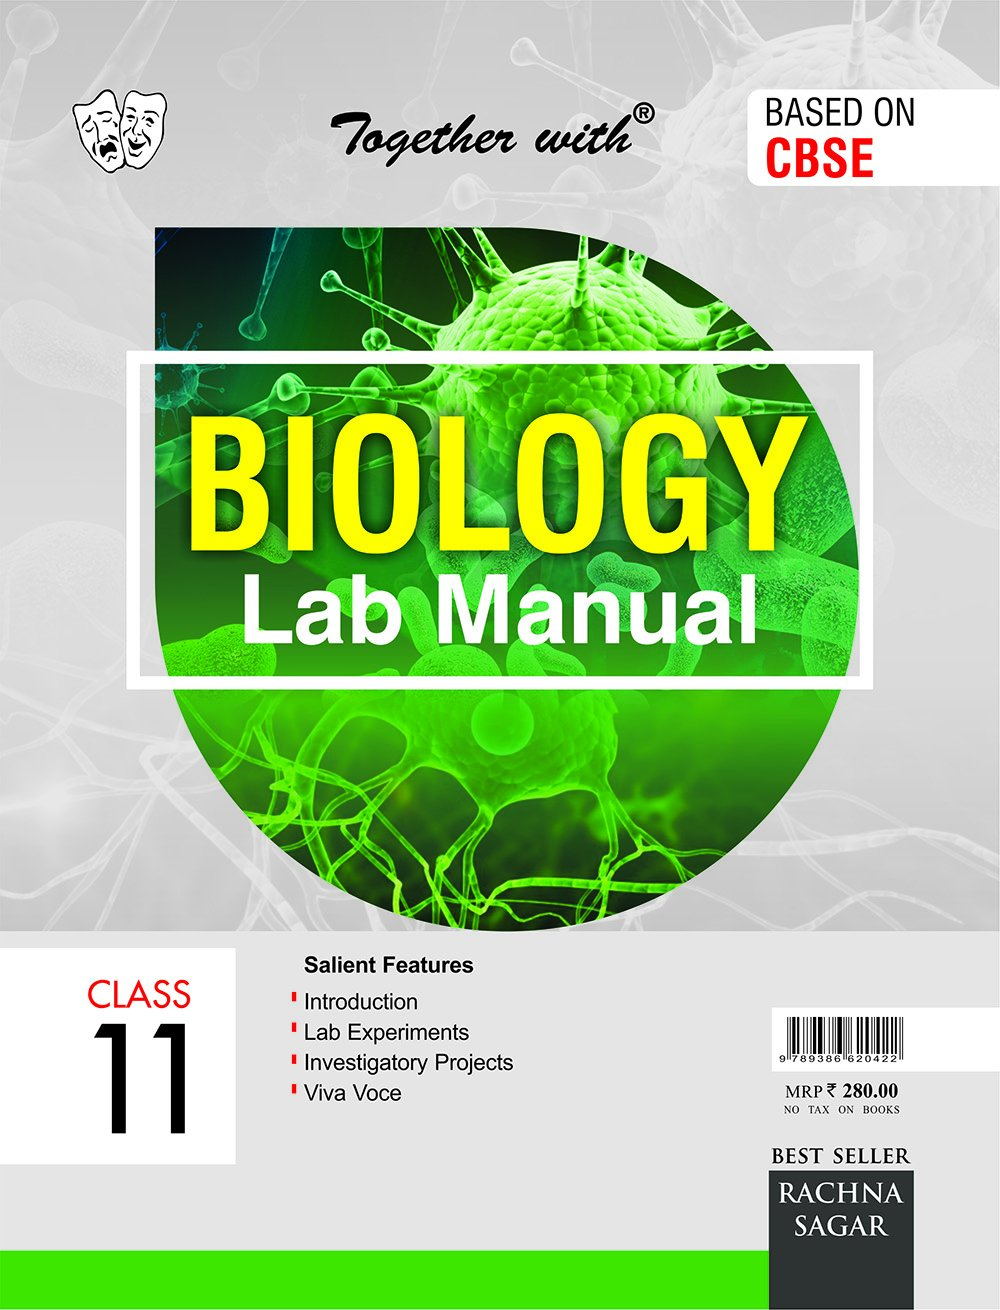 Together with CBSE Lab Manual Biology for Class 11 for 2019 Exam:  Amazon.in: Rachna Sethi: Books